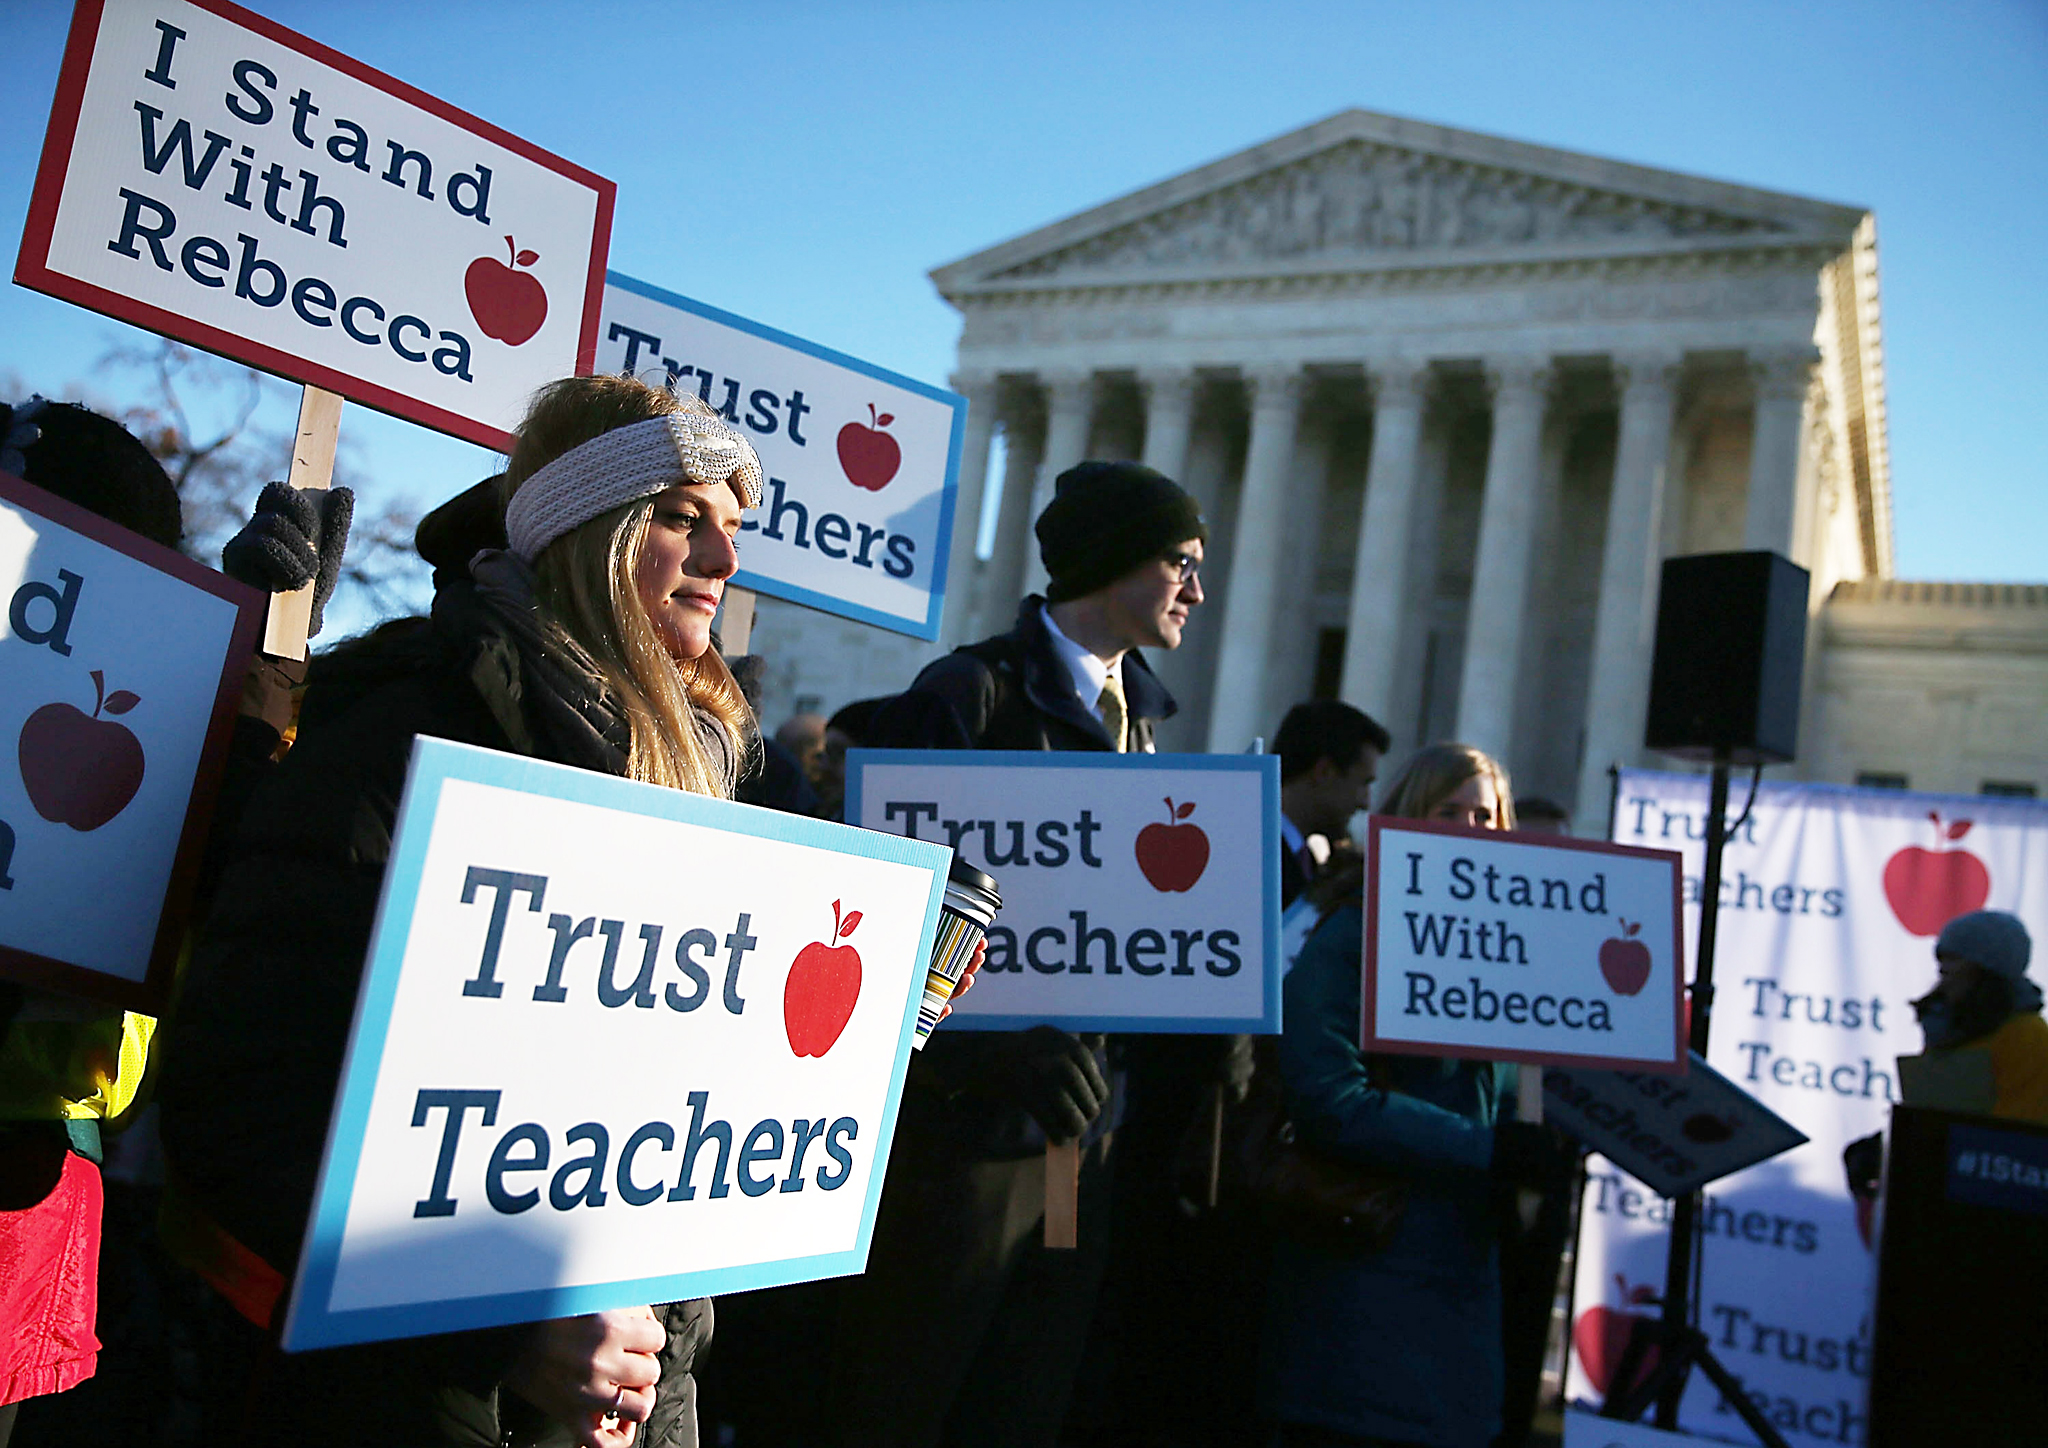 Activists Rally In Front Of U.S. Supreme Court...WASHINGTON, DC - JANUARY 11: People against the California Teachers Union rally in front of the US Supreme Court building January 11, 2016 in Washington, DC. The high court is hearing arguments in the Friedrichs v. California Teachers Association case. The case will decide whether California and twenty two other states can make public-employees, such as public school teacher Rebecca Friedrichs, to pay union agency fees.  (Photo by Mark Wilson/Getty Images)